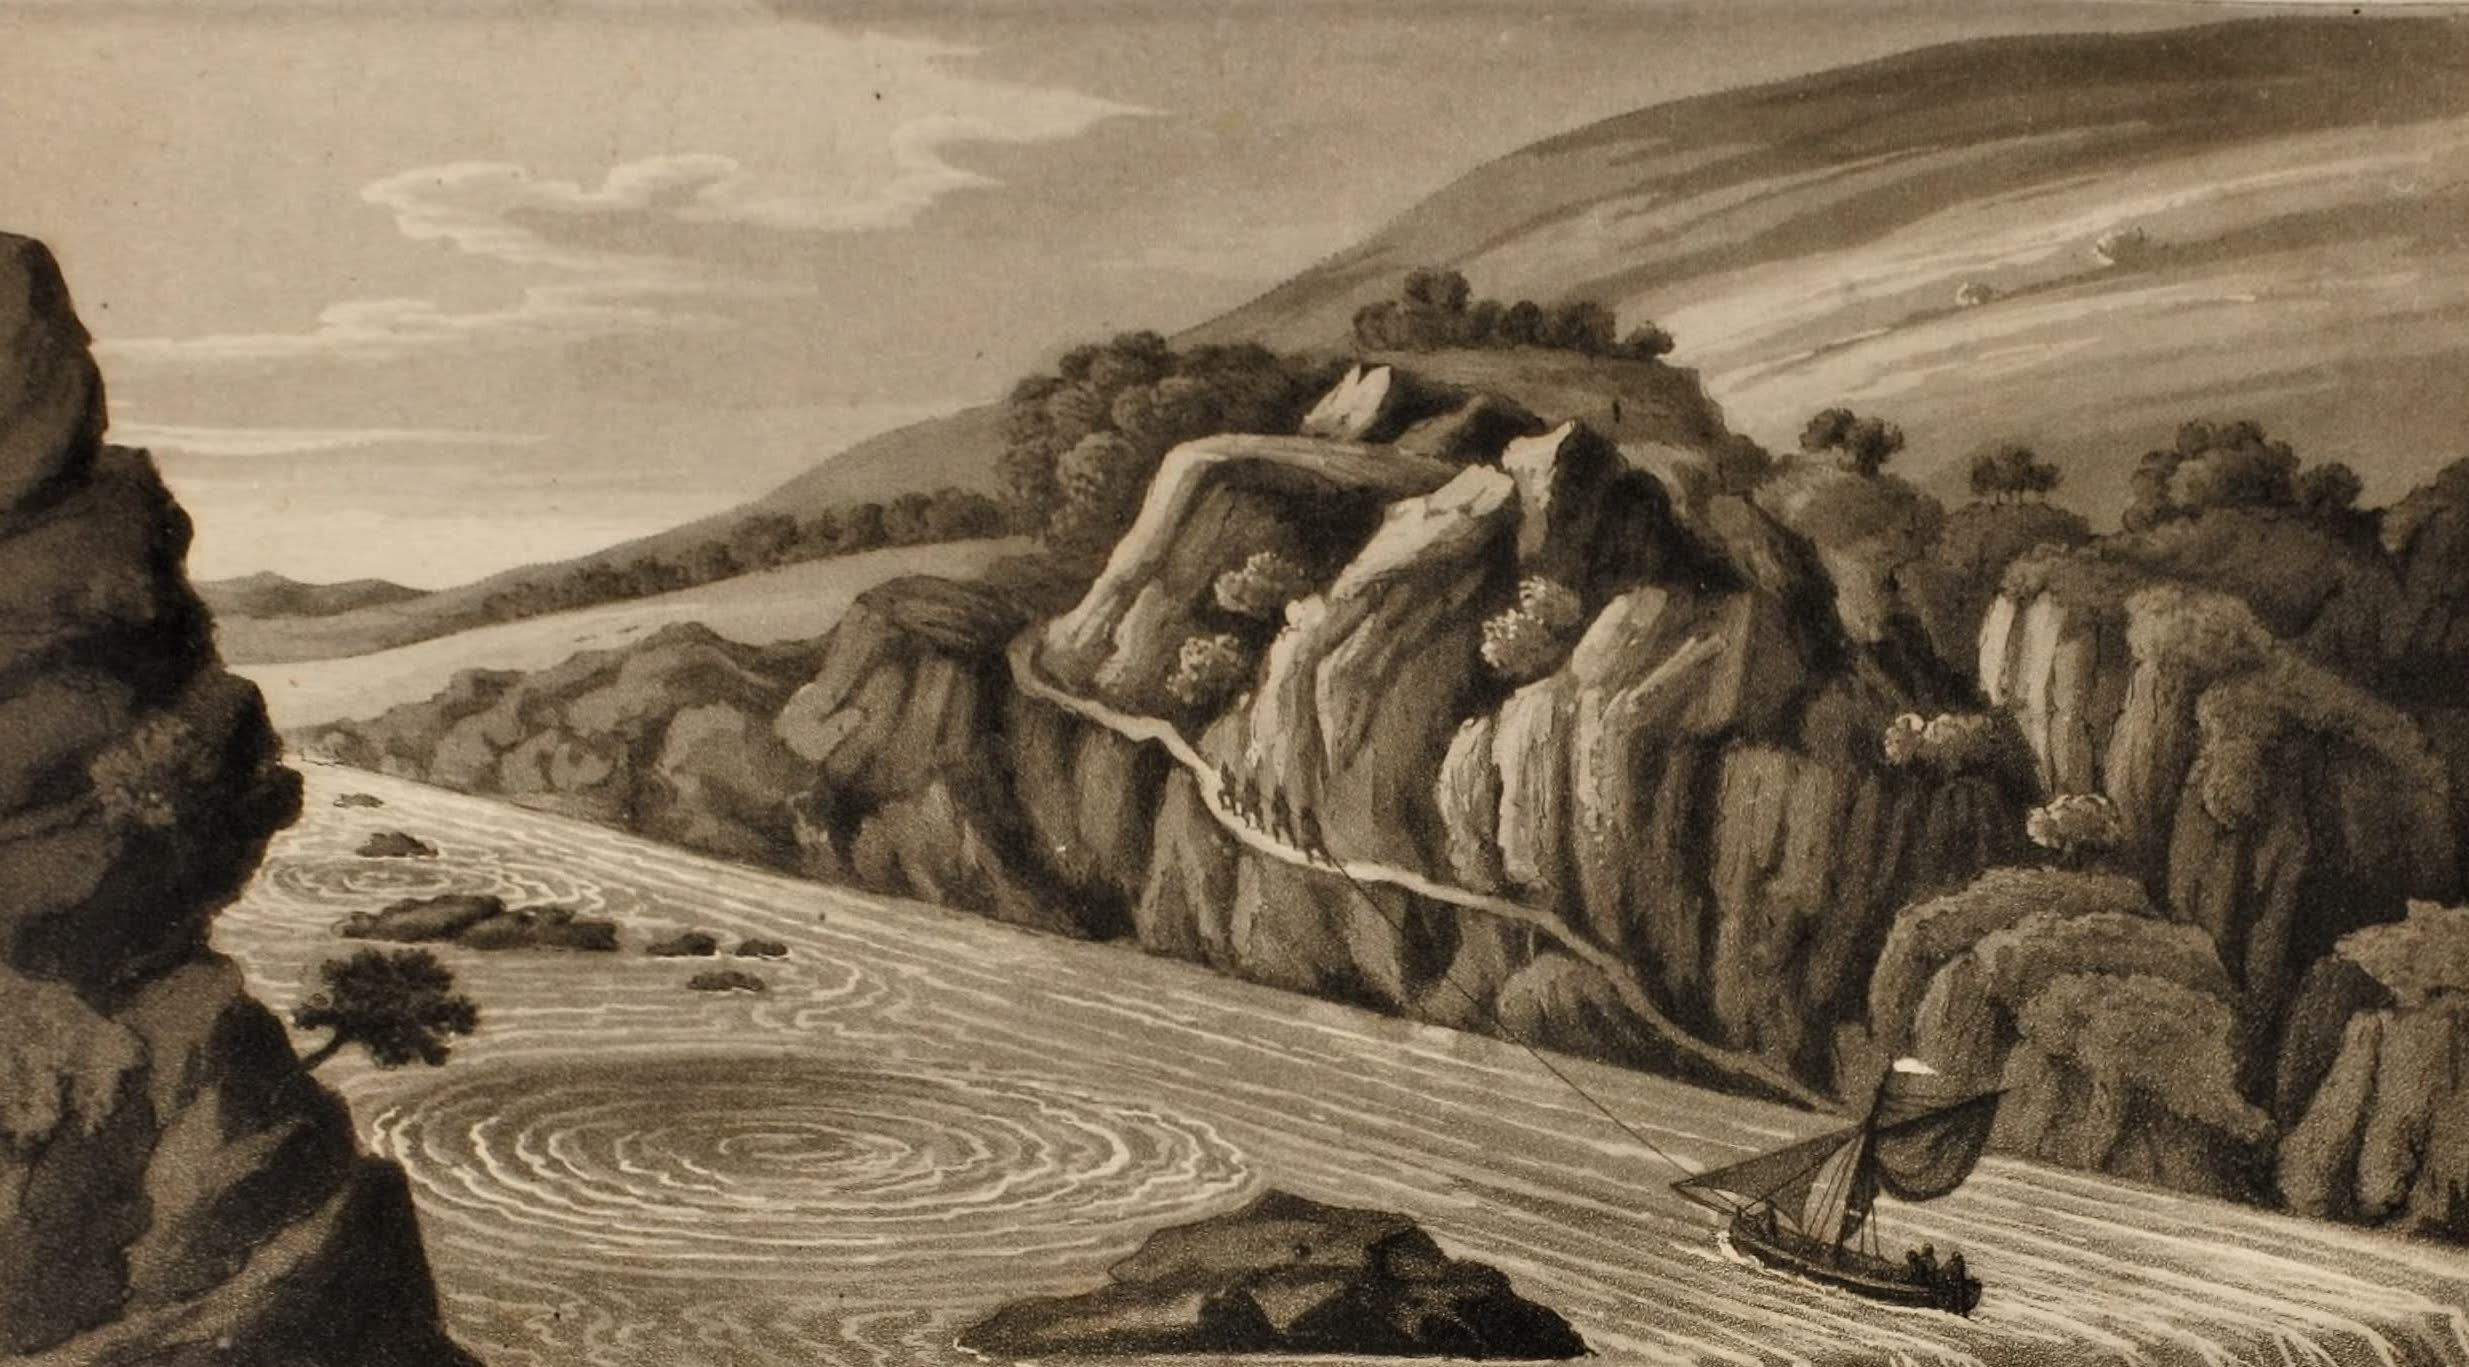 Journal of an Expedition 1400 miles up the Orinoco - Bocas del Inferno - Whirlpool on the Orinoco (1822)